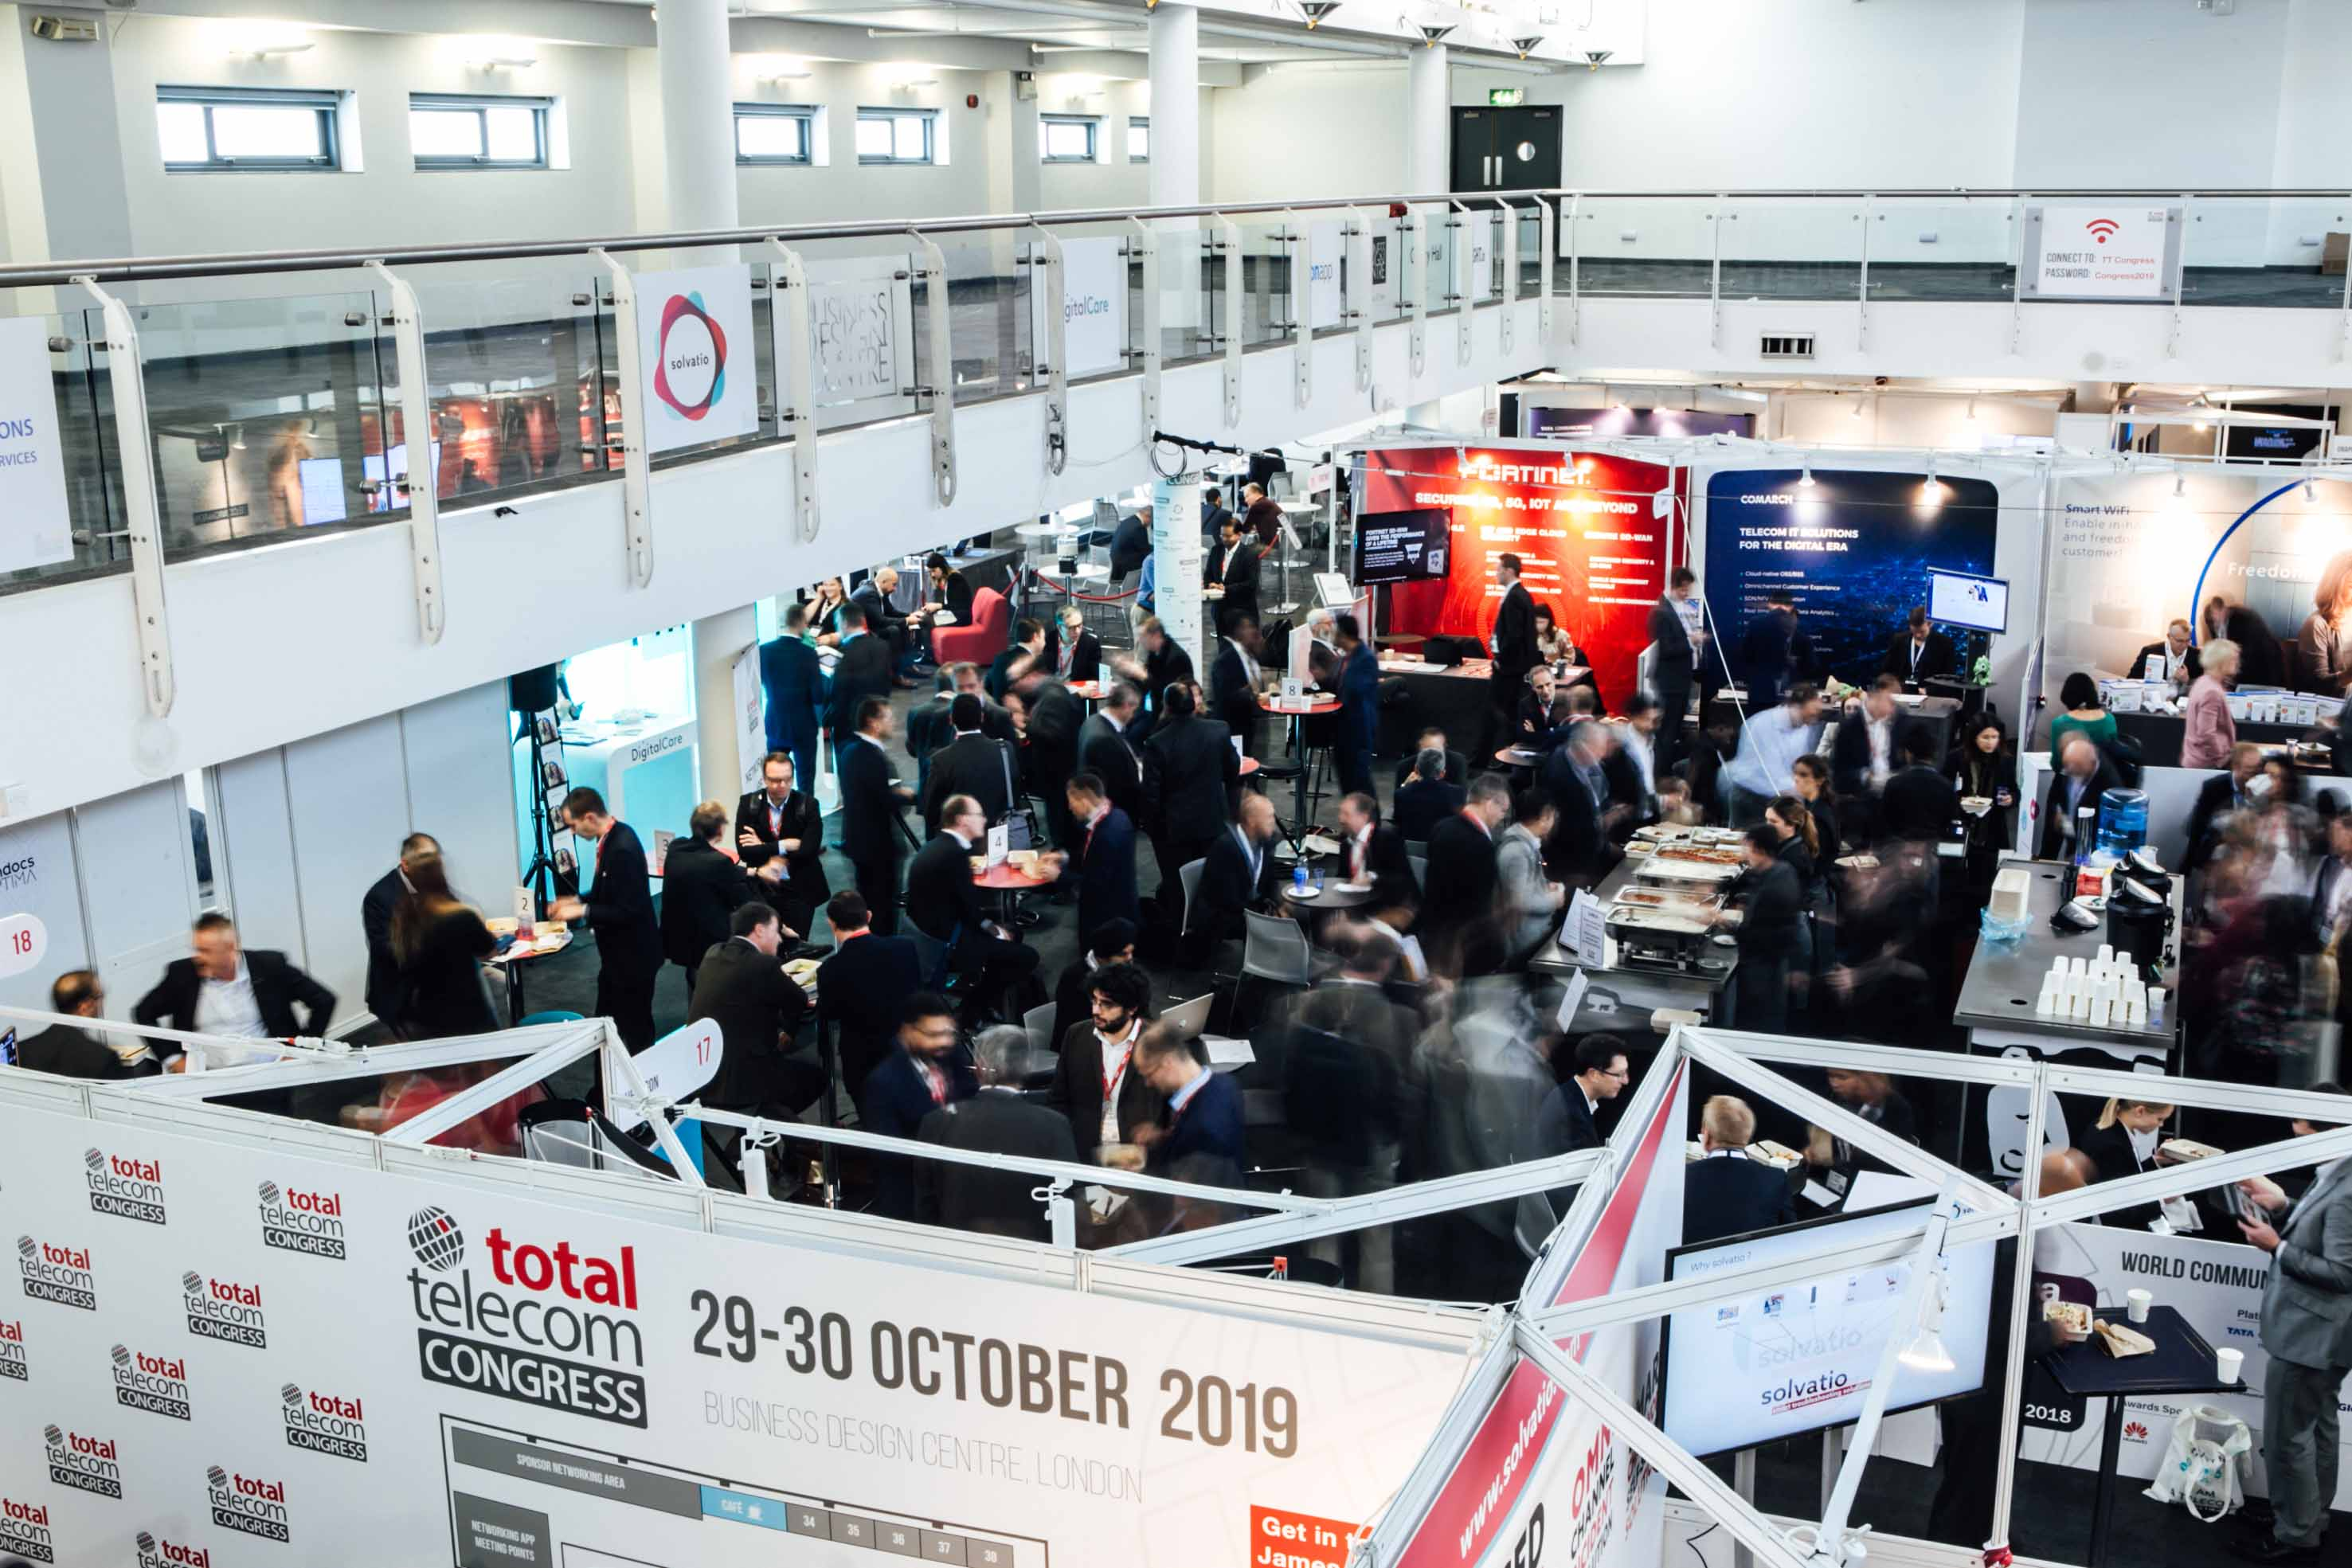 Vizolution to Connect with Top Telcos at Total Telecom Congress